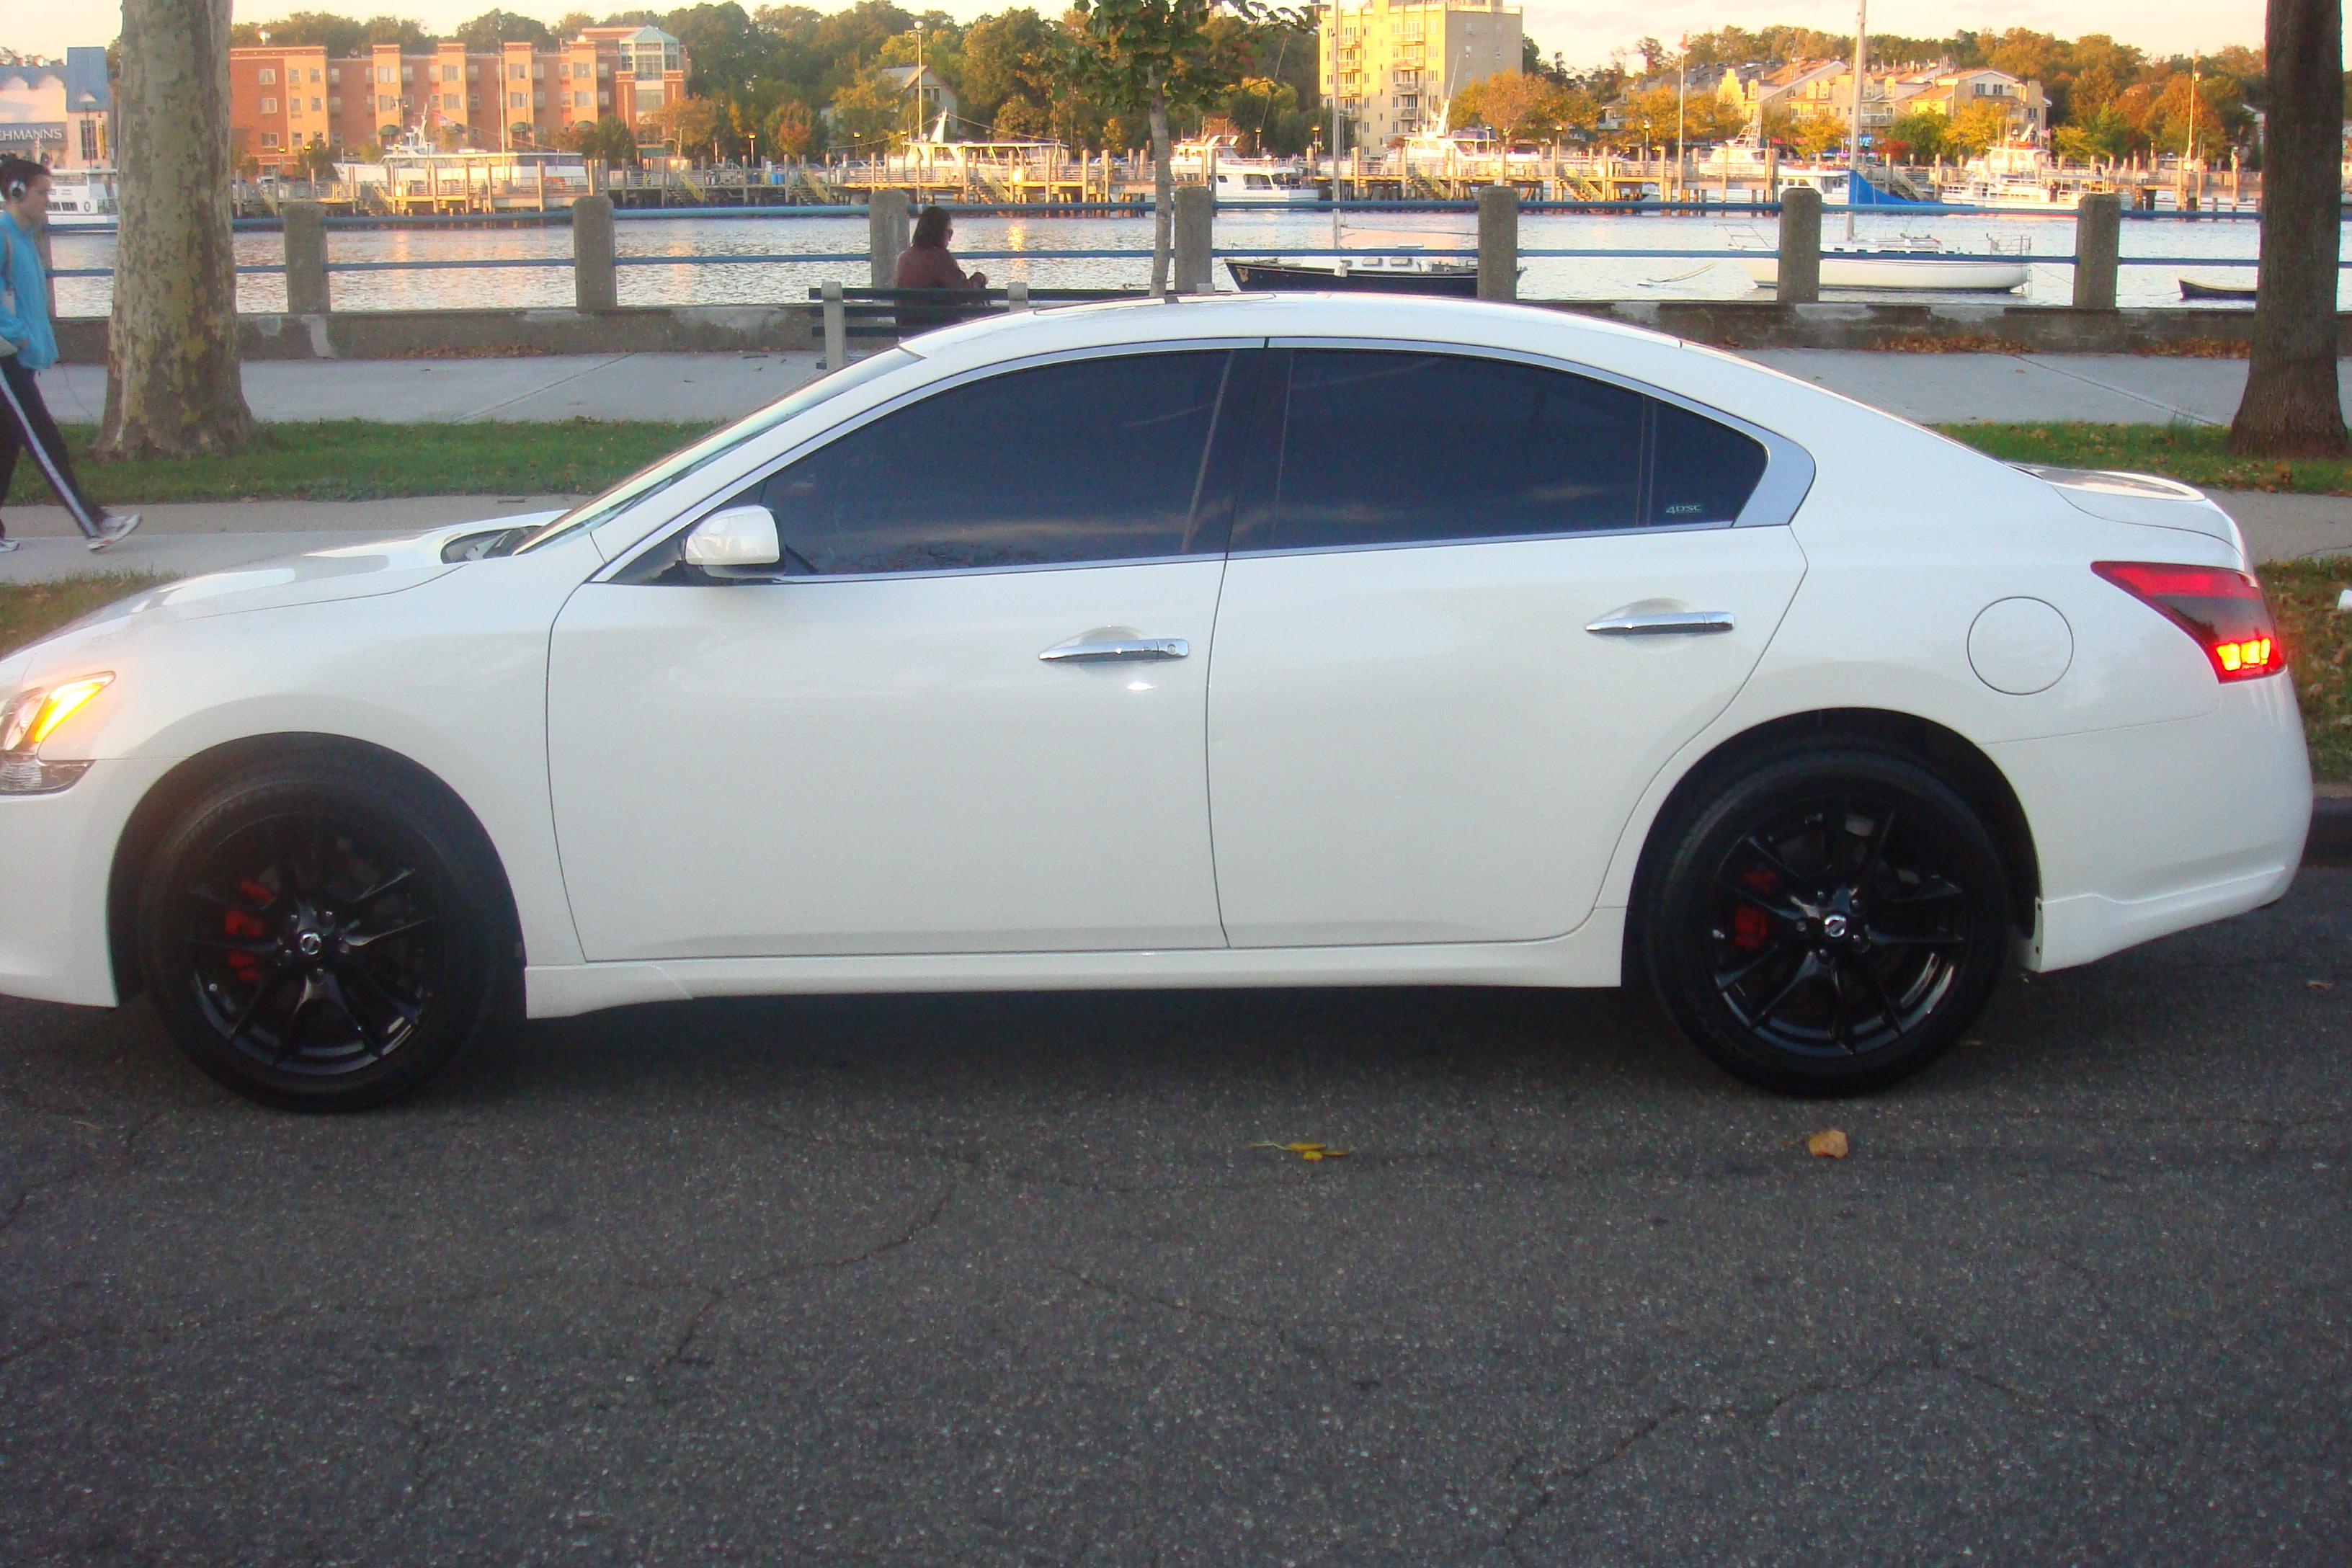 2010 nissan maxima white with black rims. Black Bedroom Furniture Sets. Home Design Ideas